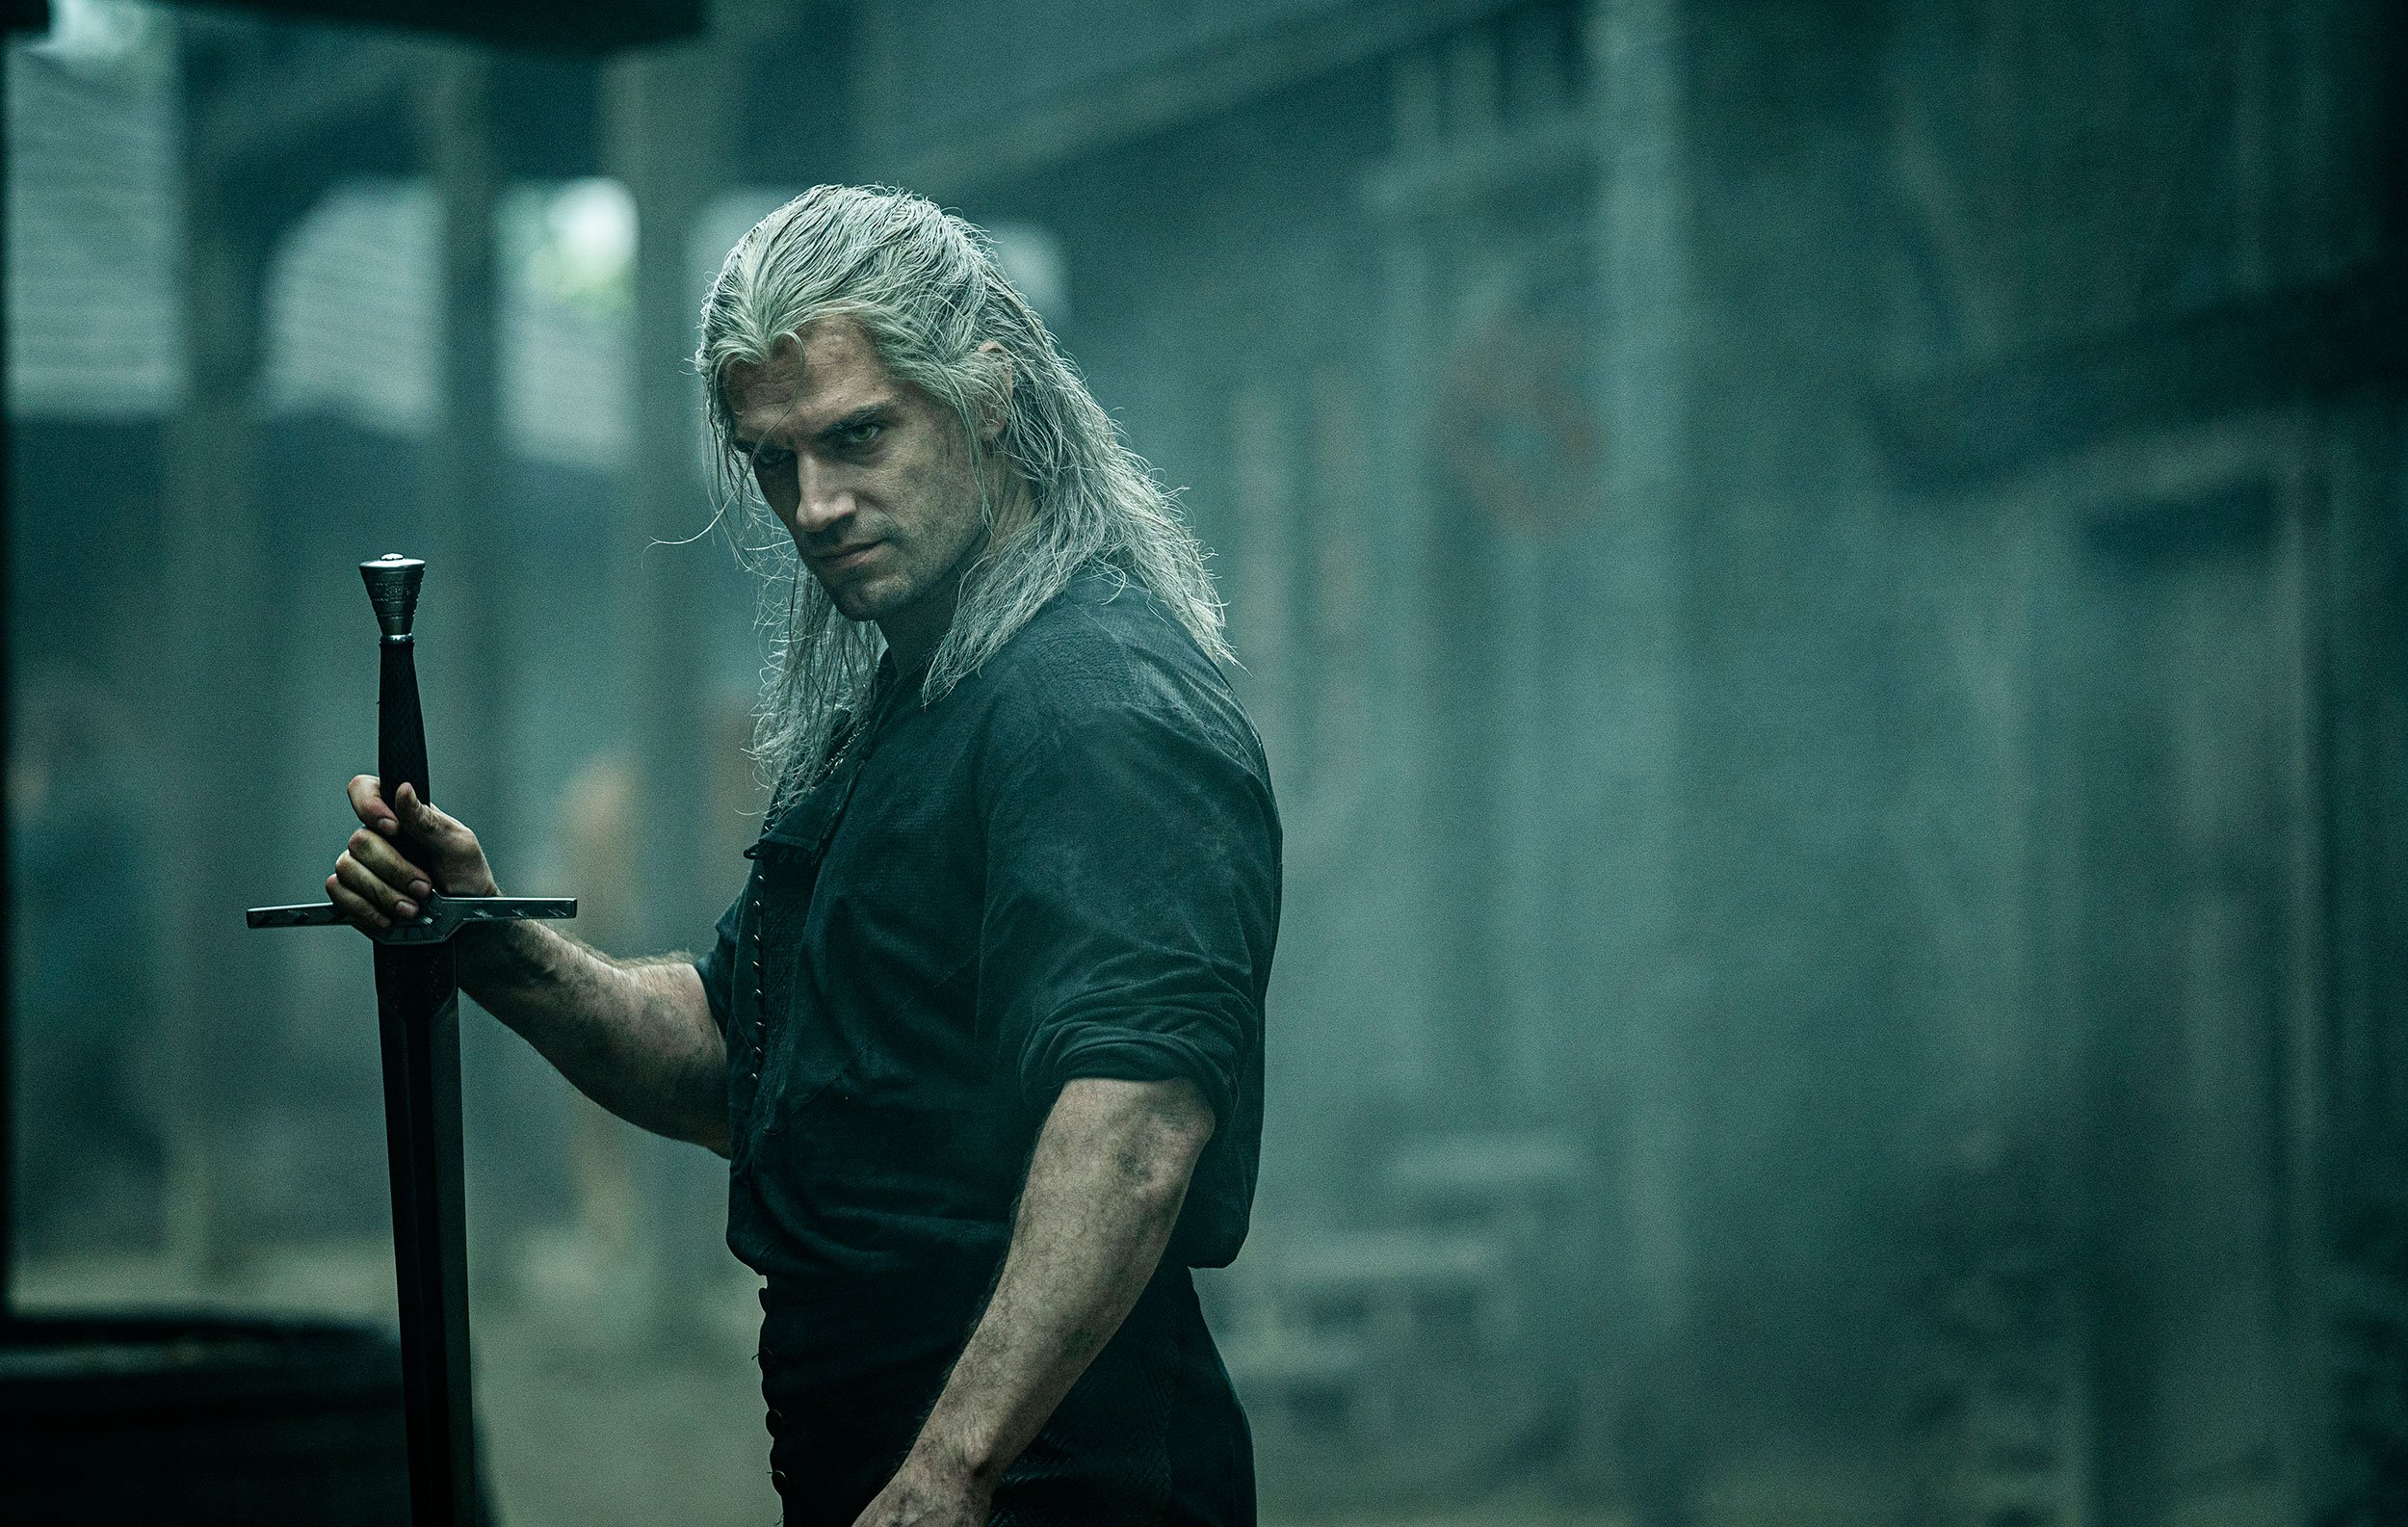 Bananas Porn Gay Money the witcher' review: the series favors fight scenes over